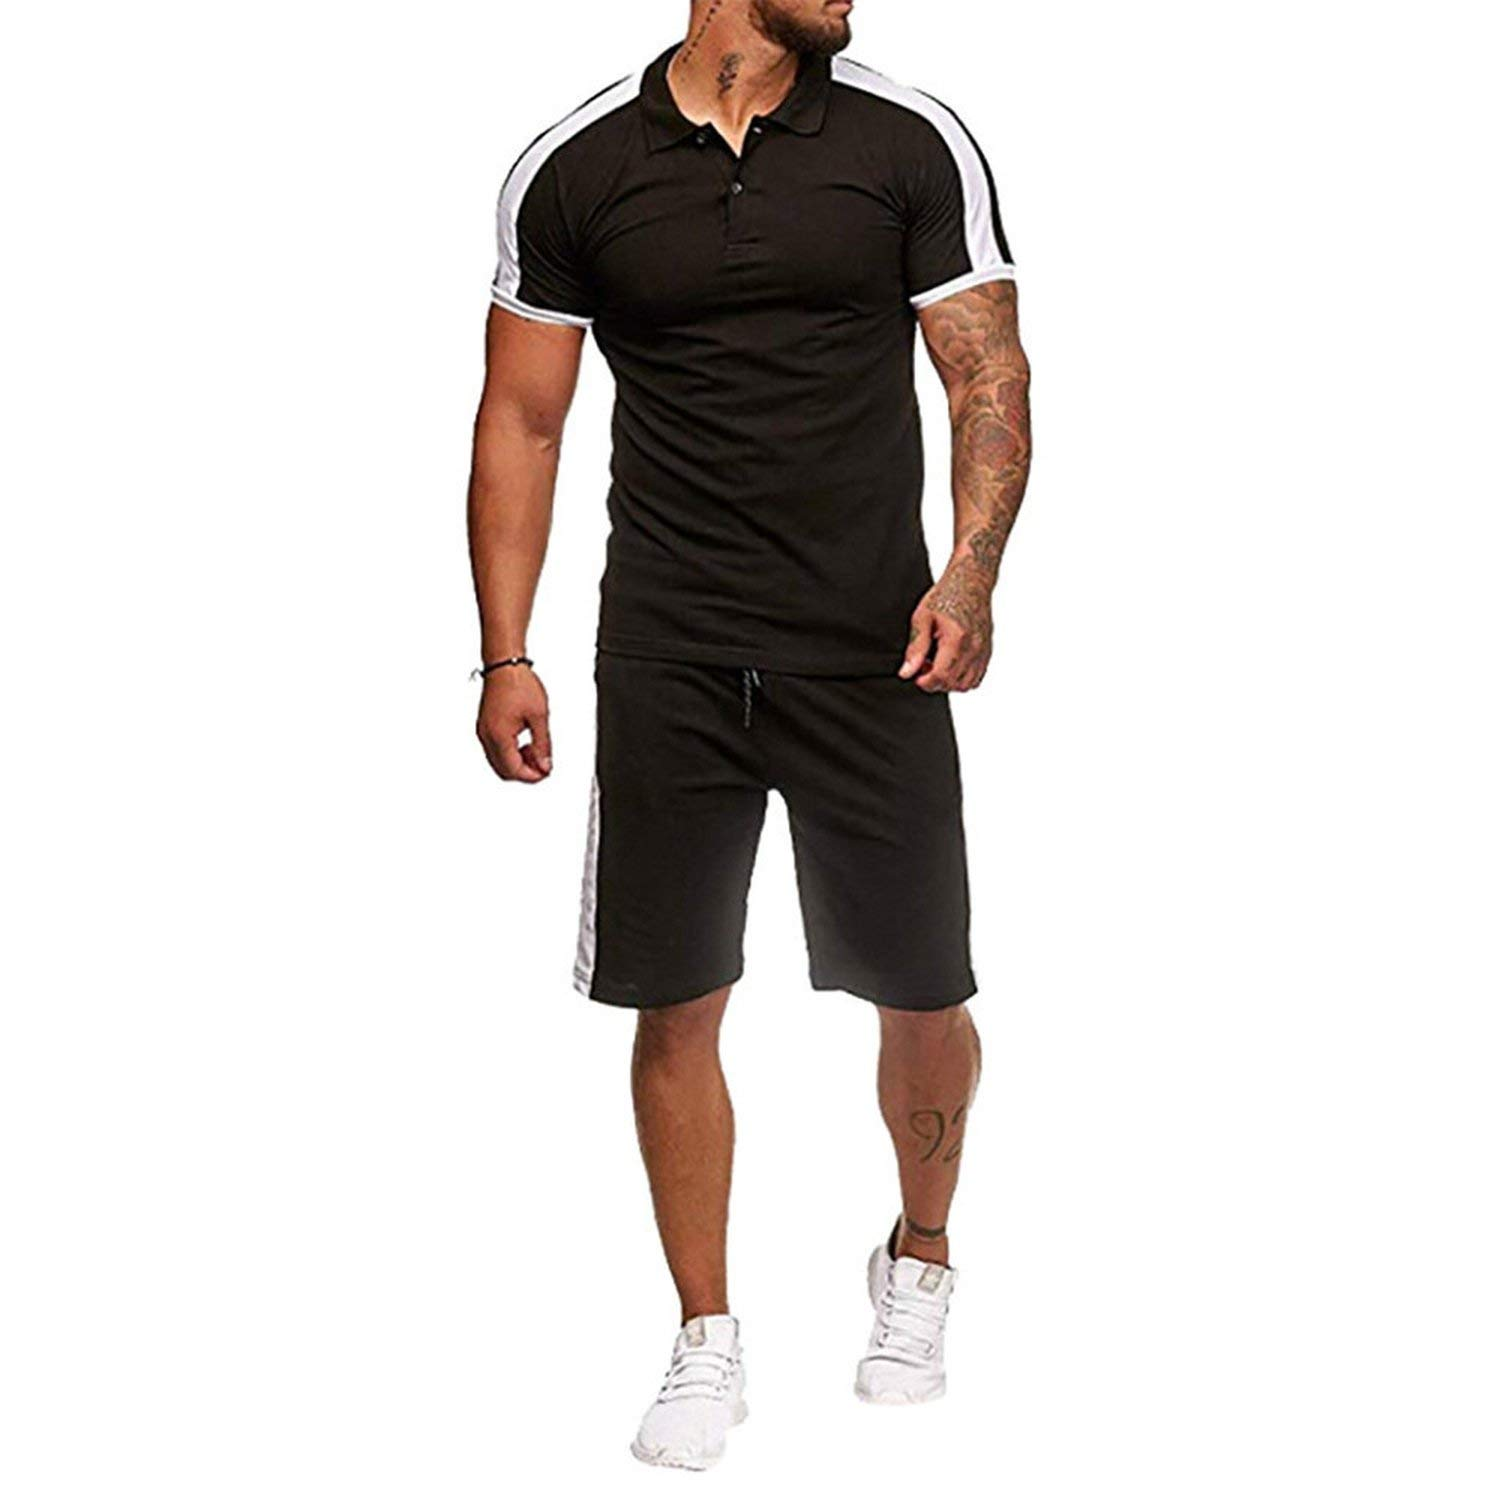 Black Set Small Tracksuit Set Men Beach Wear Casual Harajuku Sportswear Sets Slip Soft Joggings Polo Shirt Suit Sweat